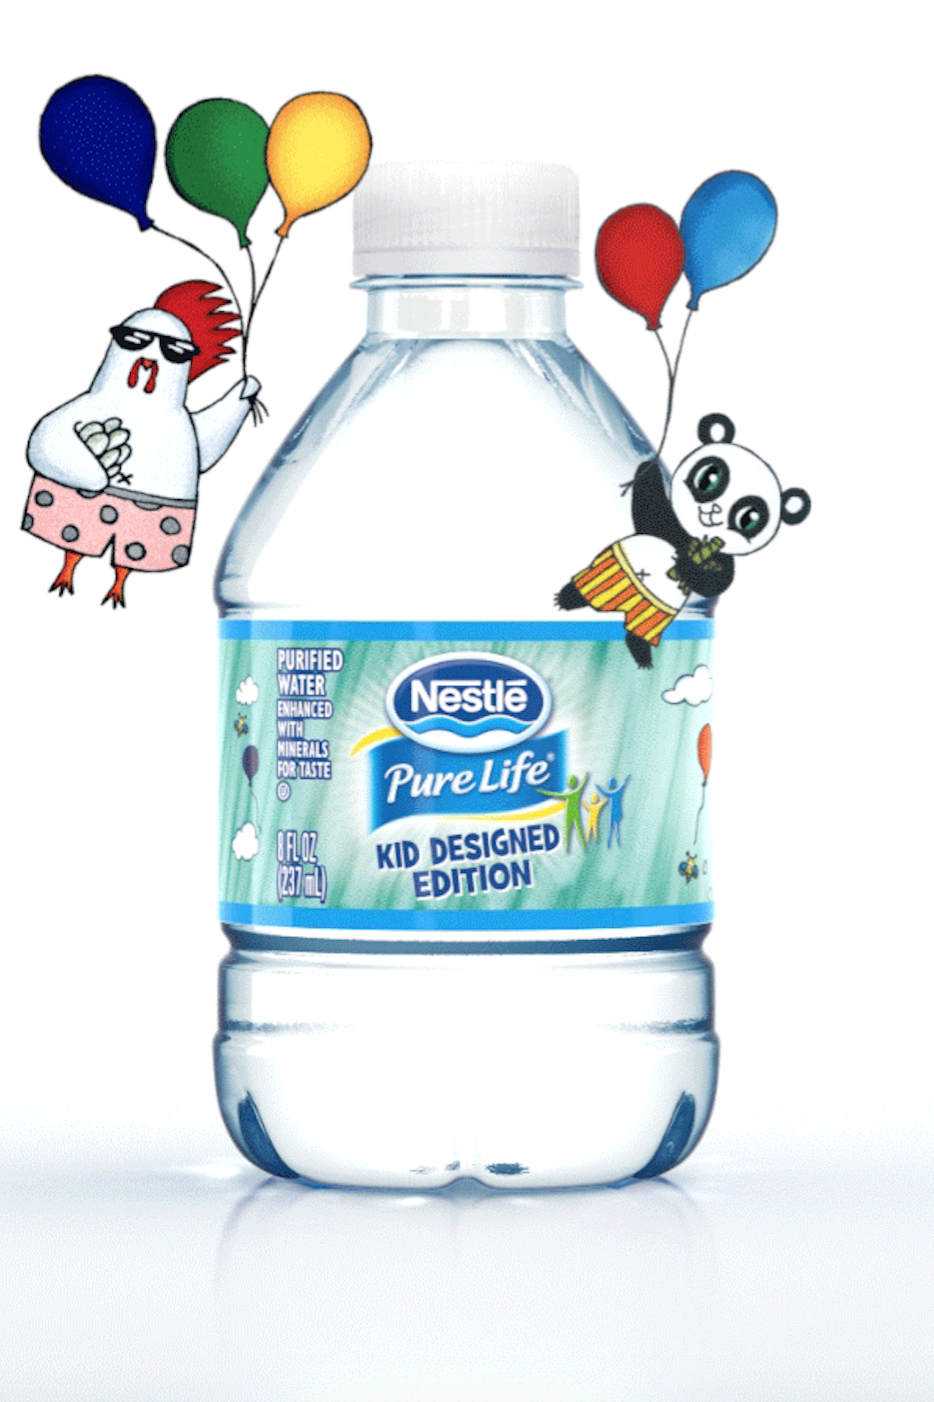 Nestle Pure Life Kid Friendly 8oz Share A Smile Bottles Make Drinking Water Fun These Limited Edition Bottles Are De Nestle Pure Life Pure Products Nestle